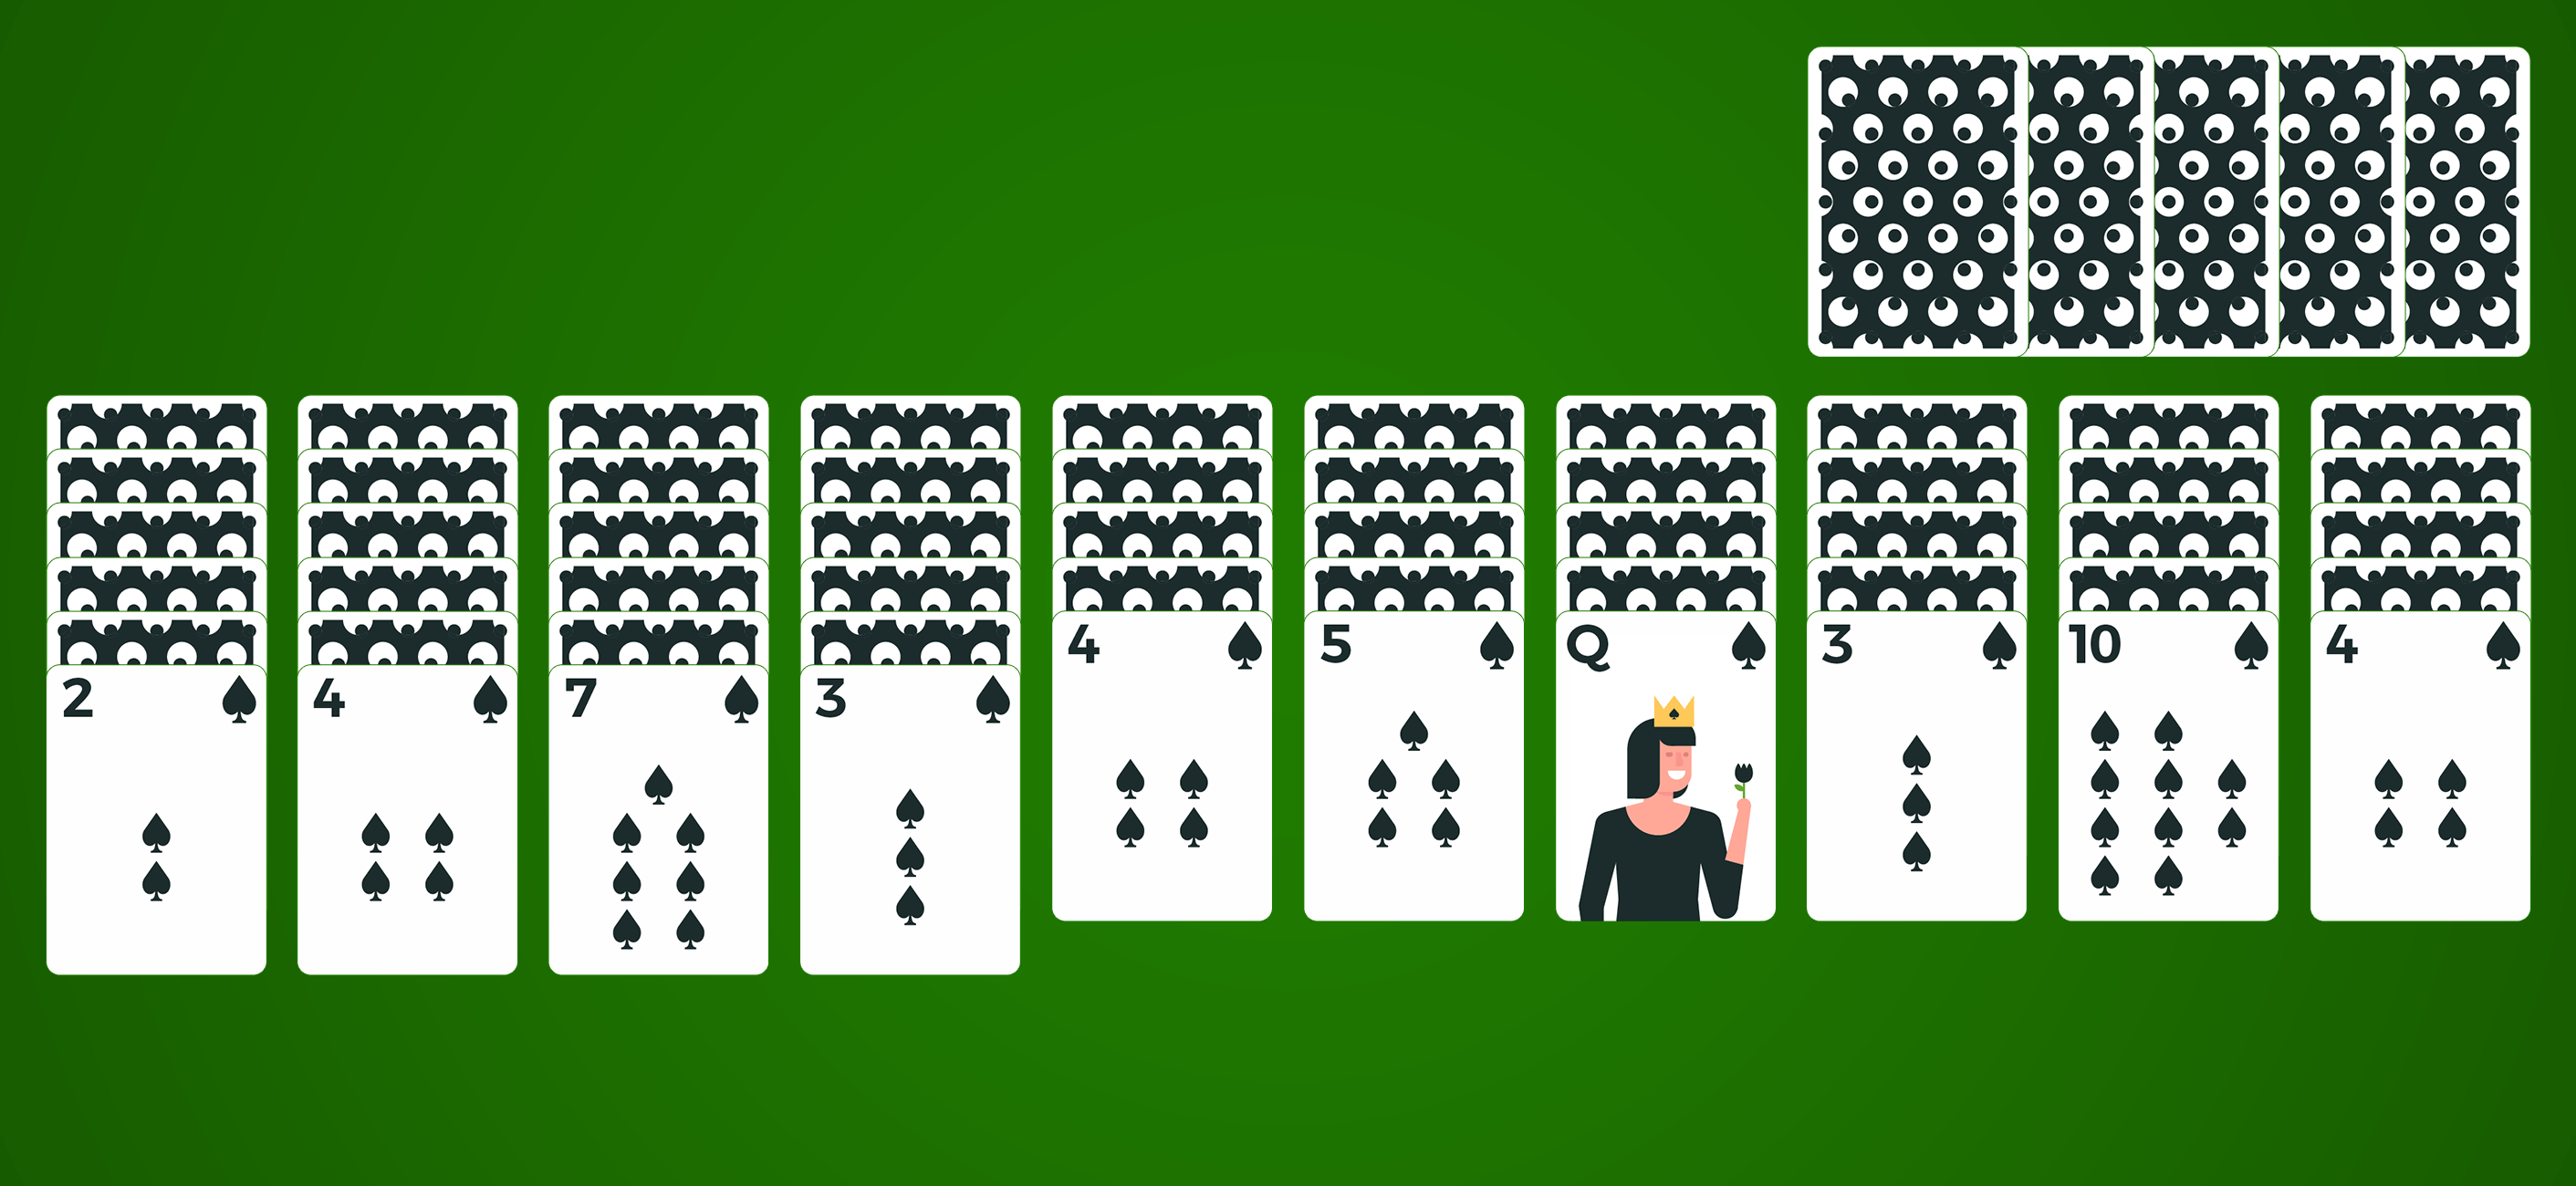 spider solitaire cards